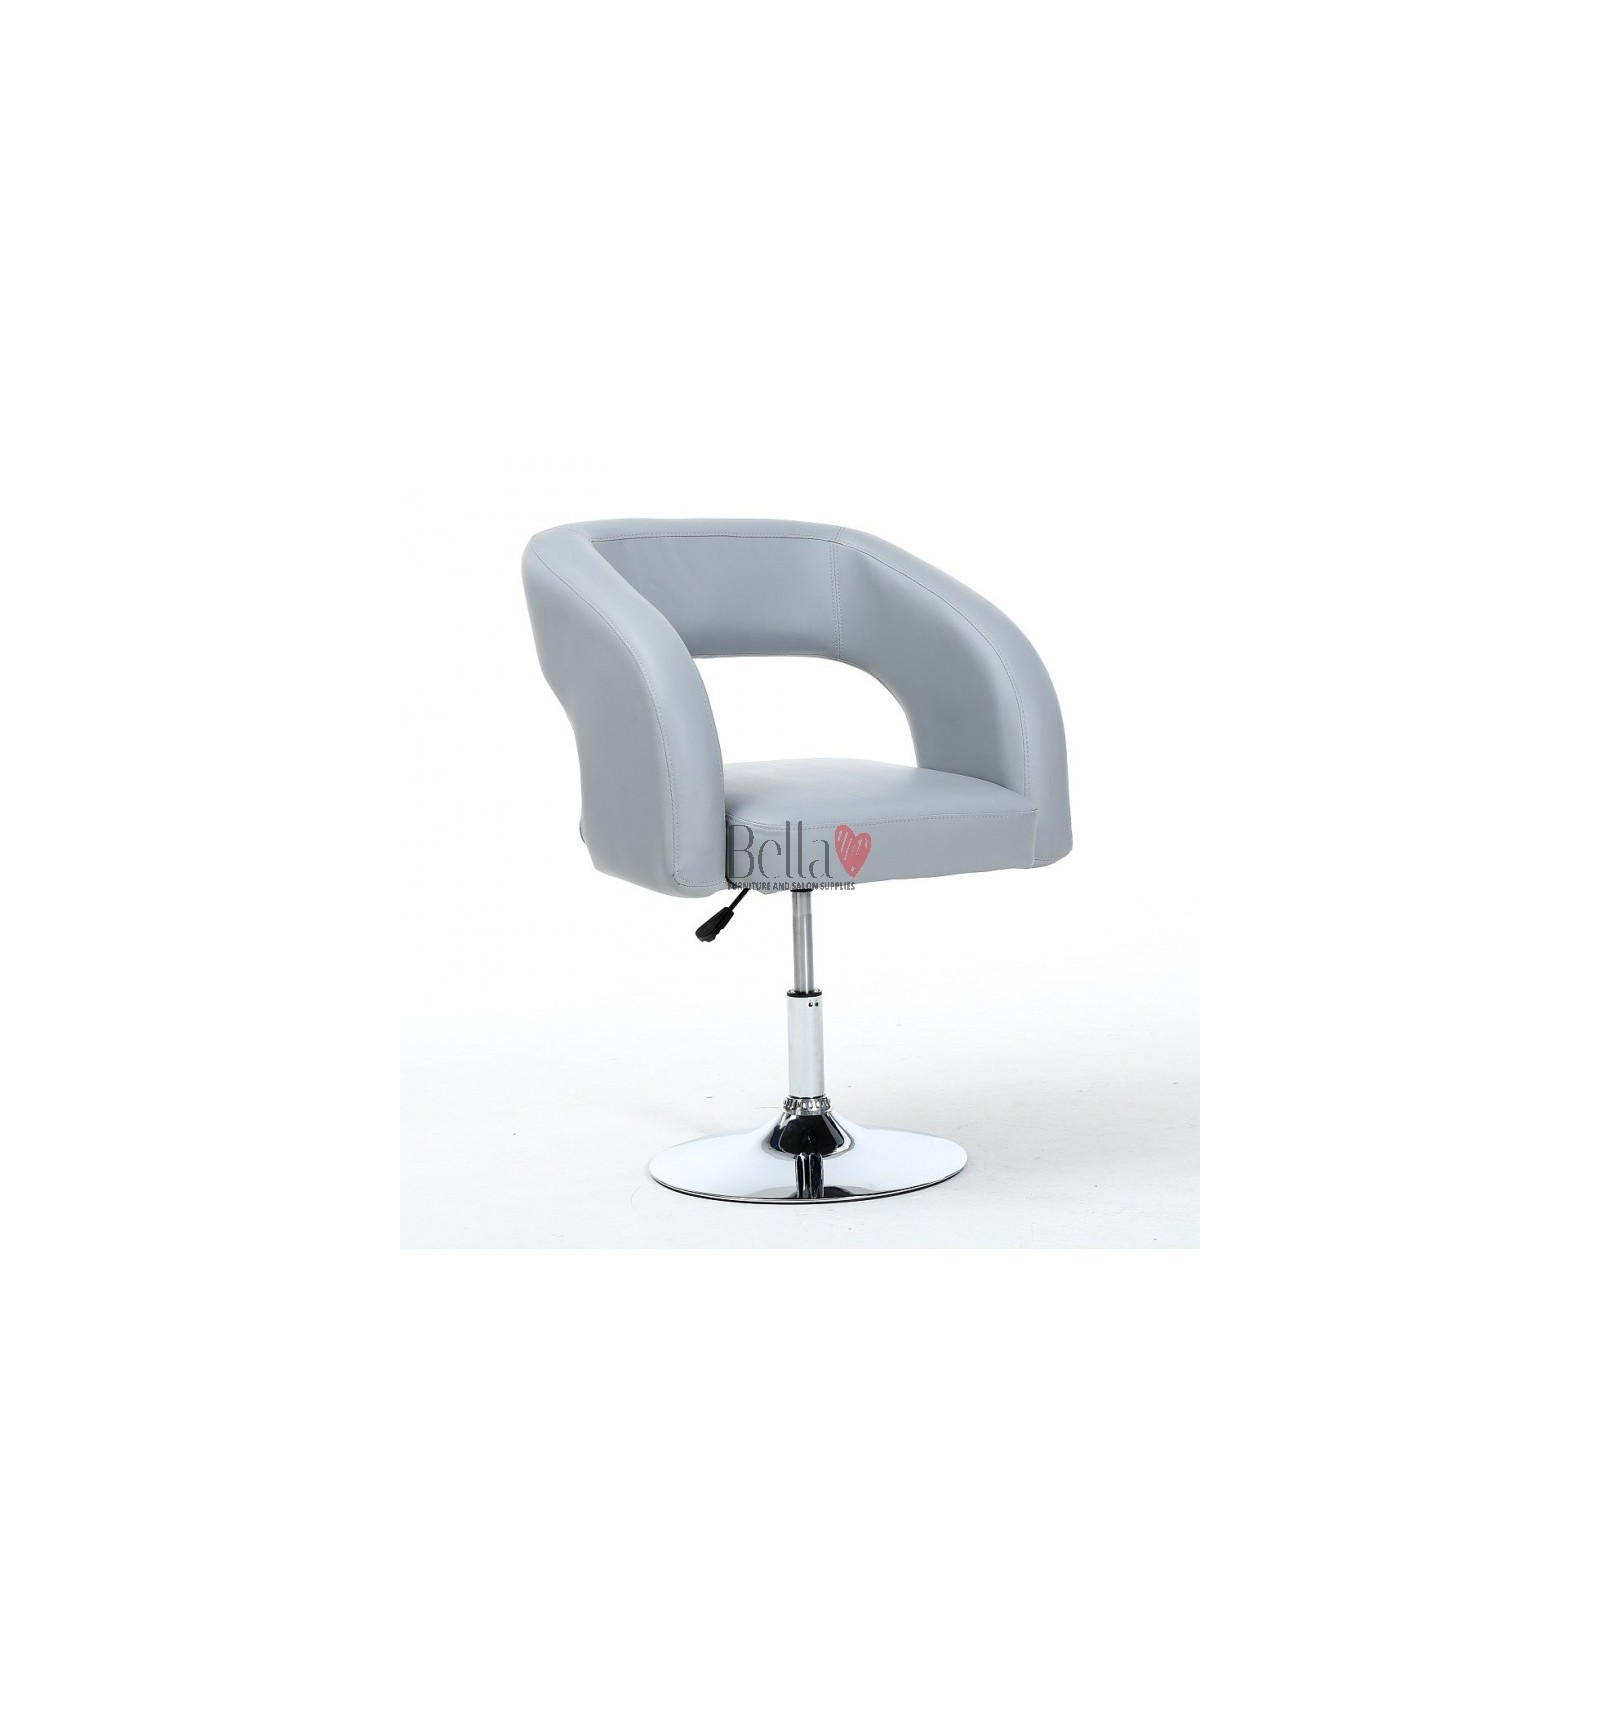 hydraulic hair styling chairs office chair for lower back pain bella - bespoke beauty salon and nails in ireland